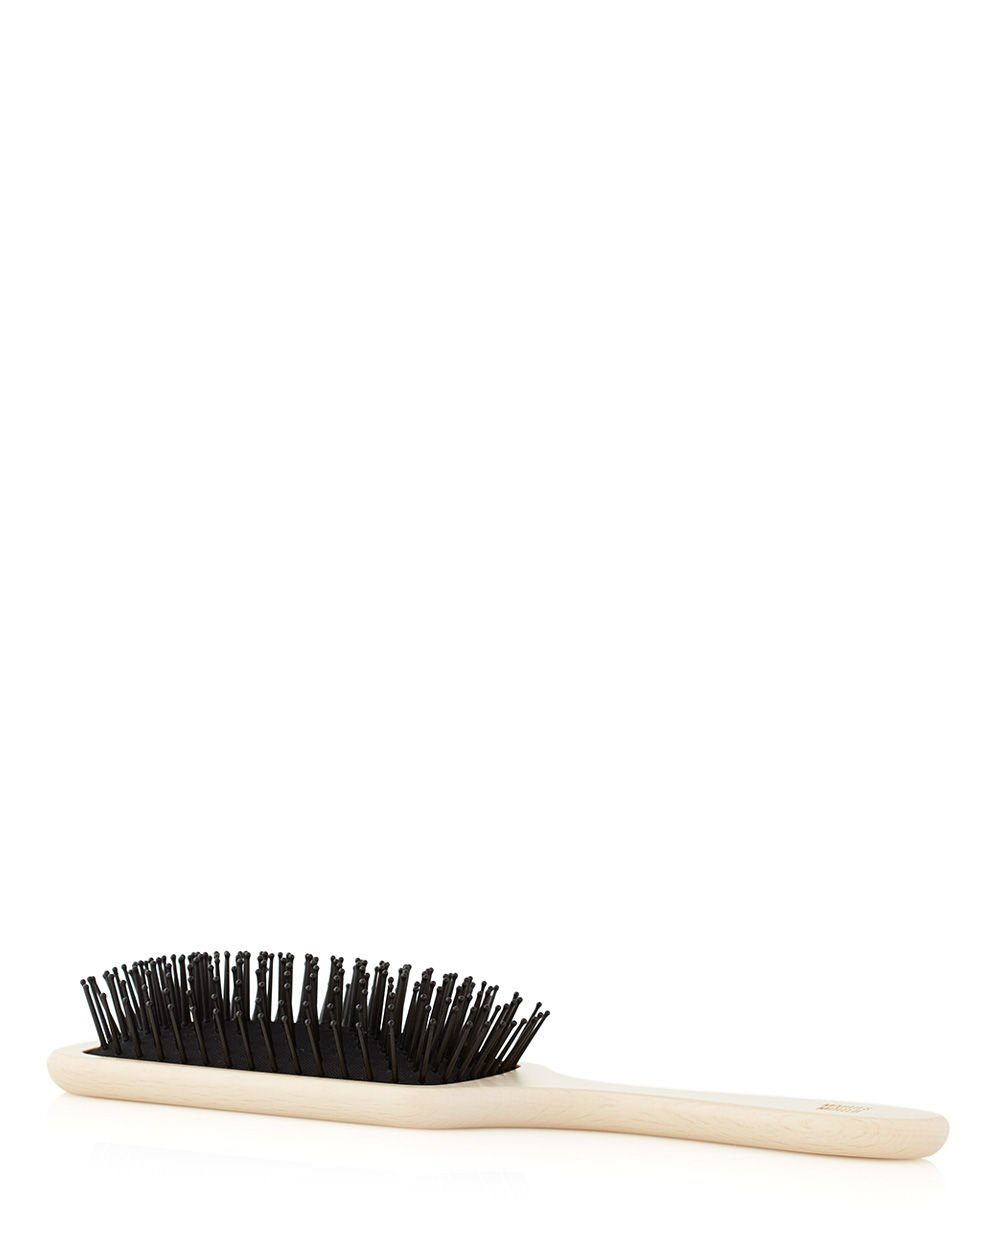 Marlies Möller Bürste »Hair & Scalp Brush«